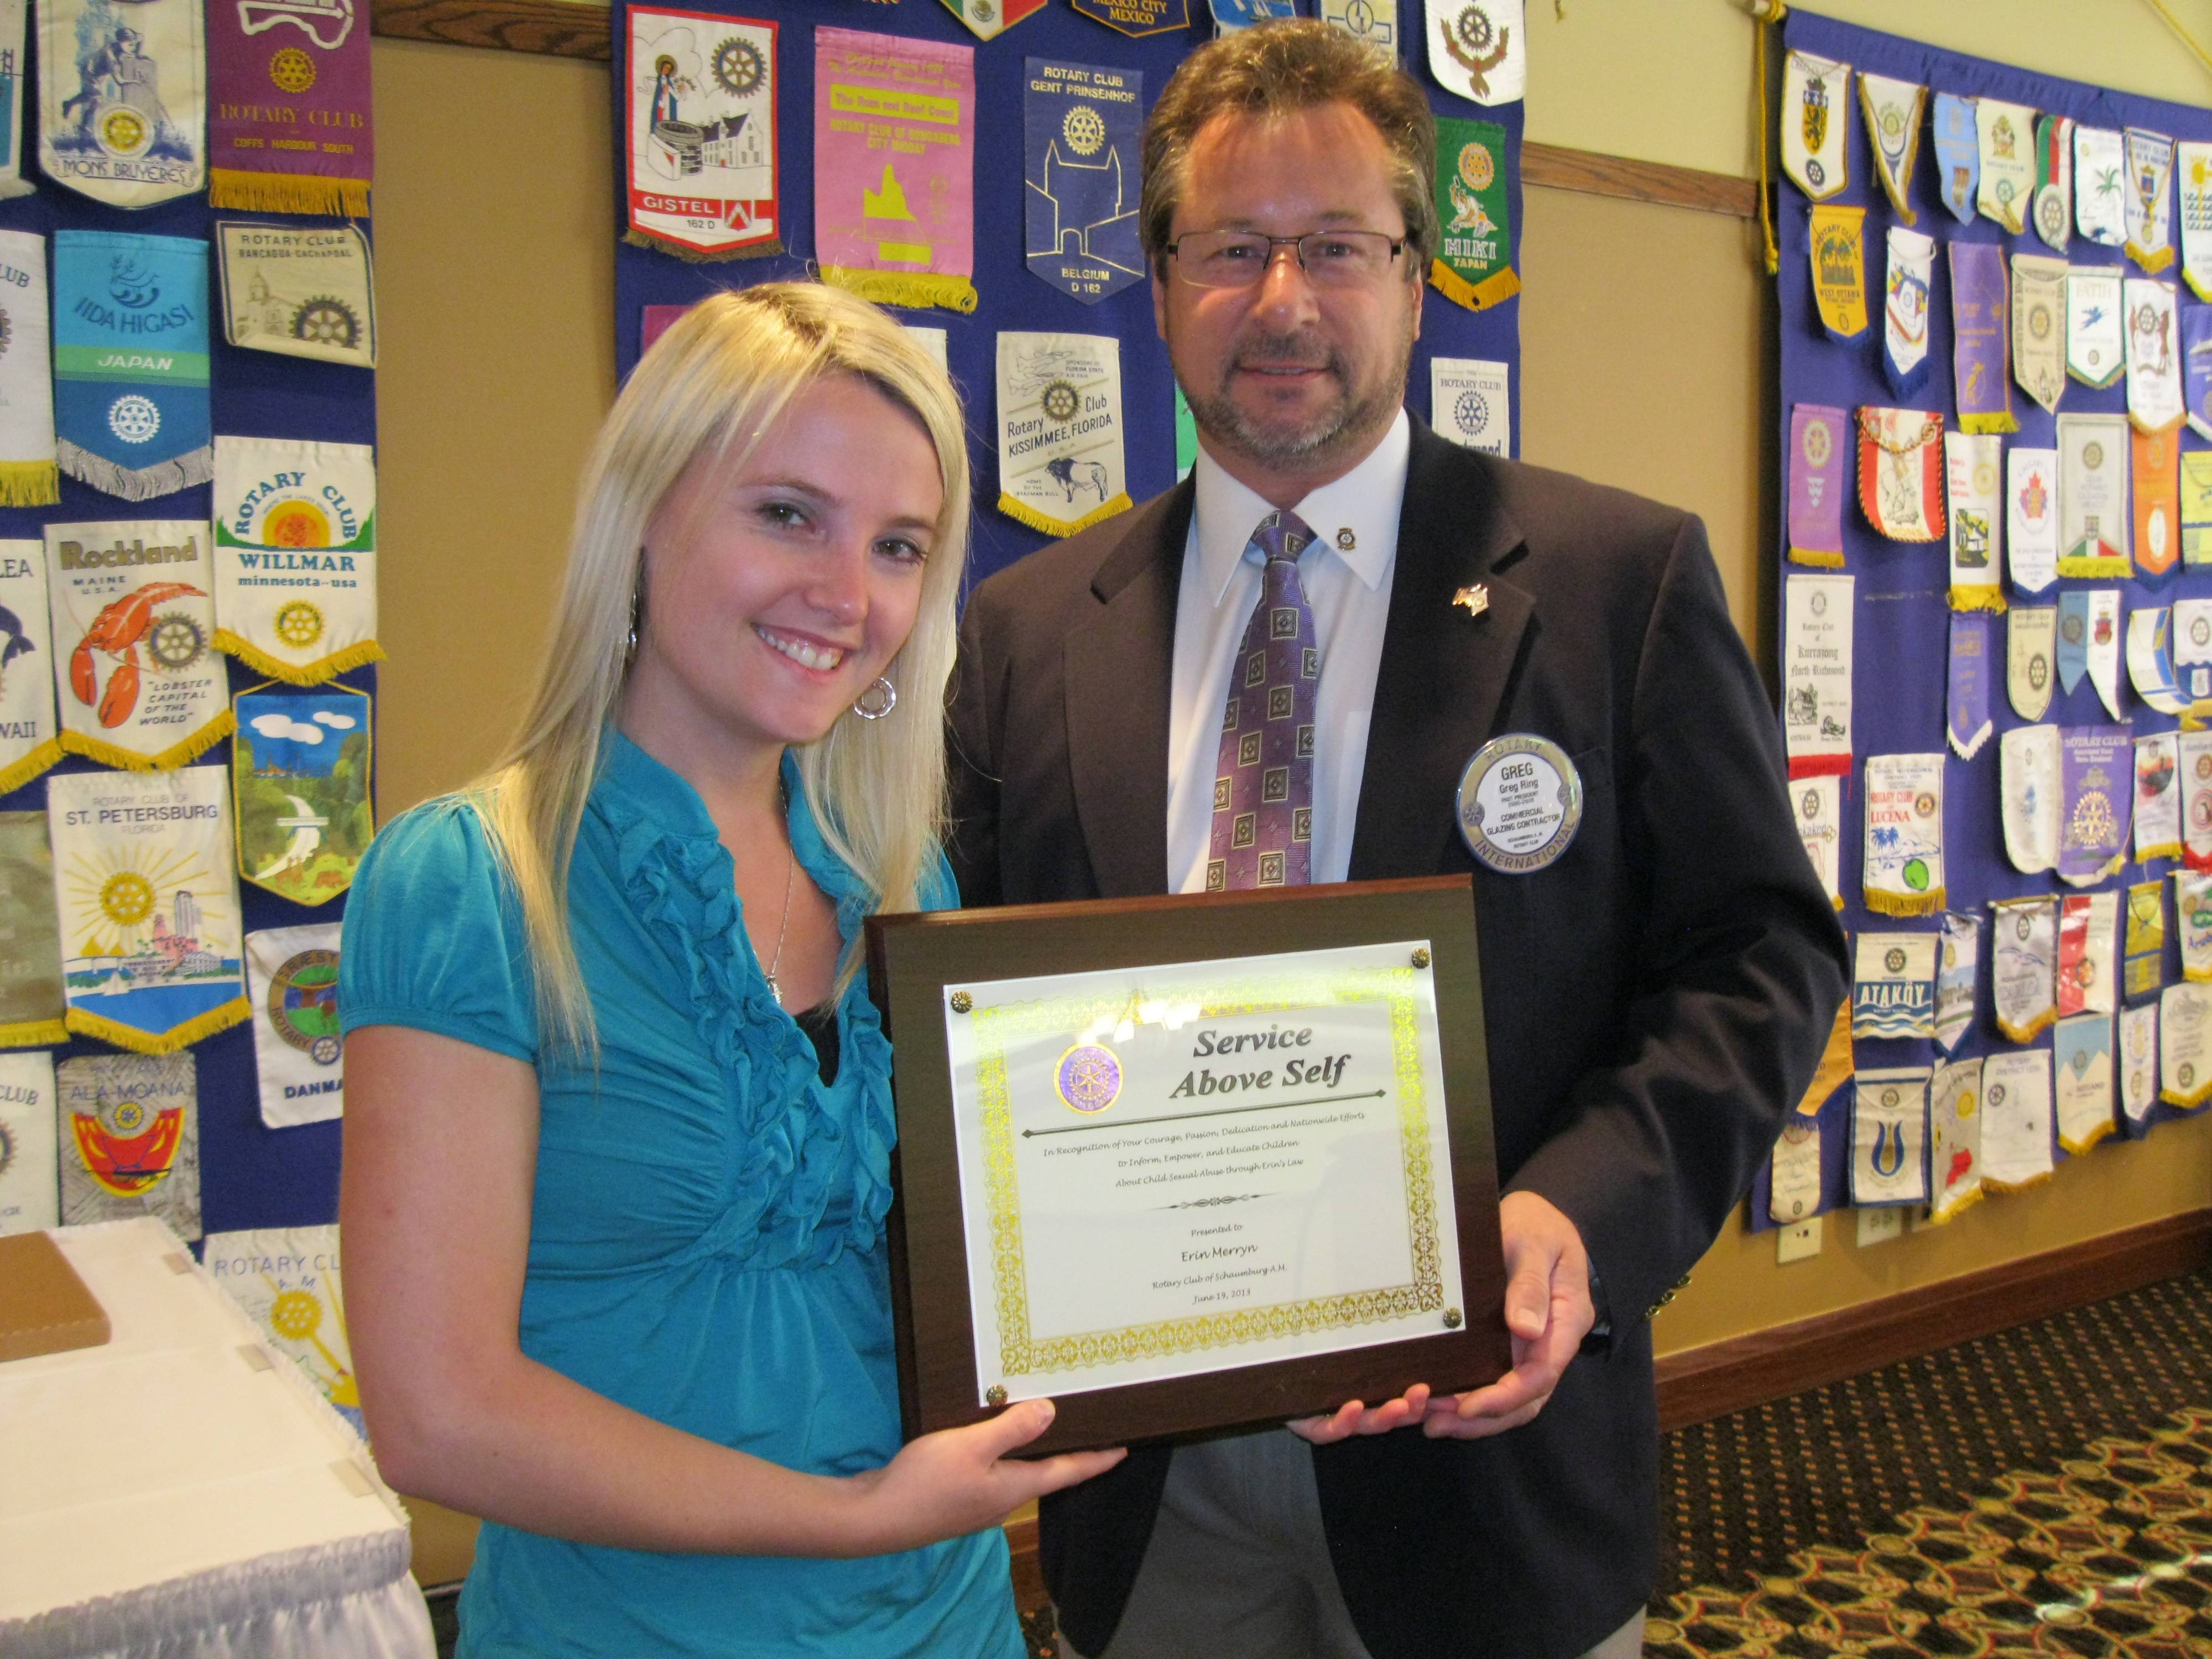 From left to right -- Erin Merryn receives Service Above Self Award from Schaumburg A.M. Rotary president Greg Ring